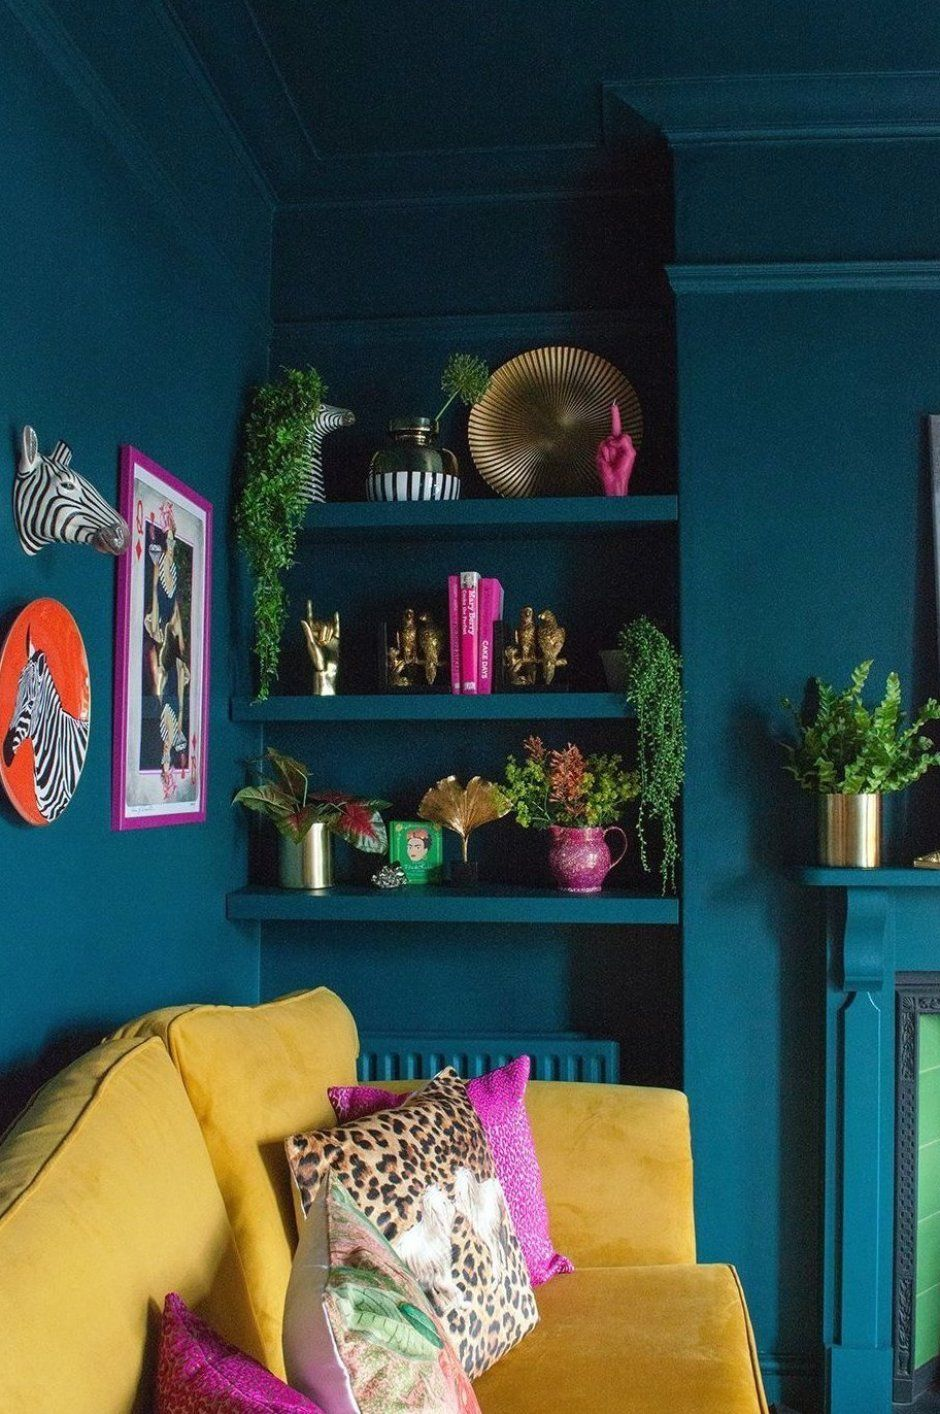 Photo of Teal and mustard living room  Colourful  maximalist decor in